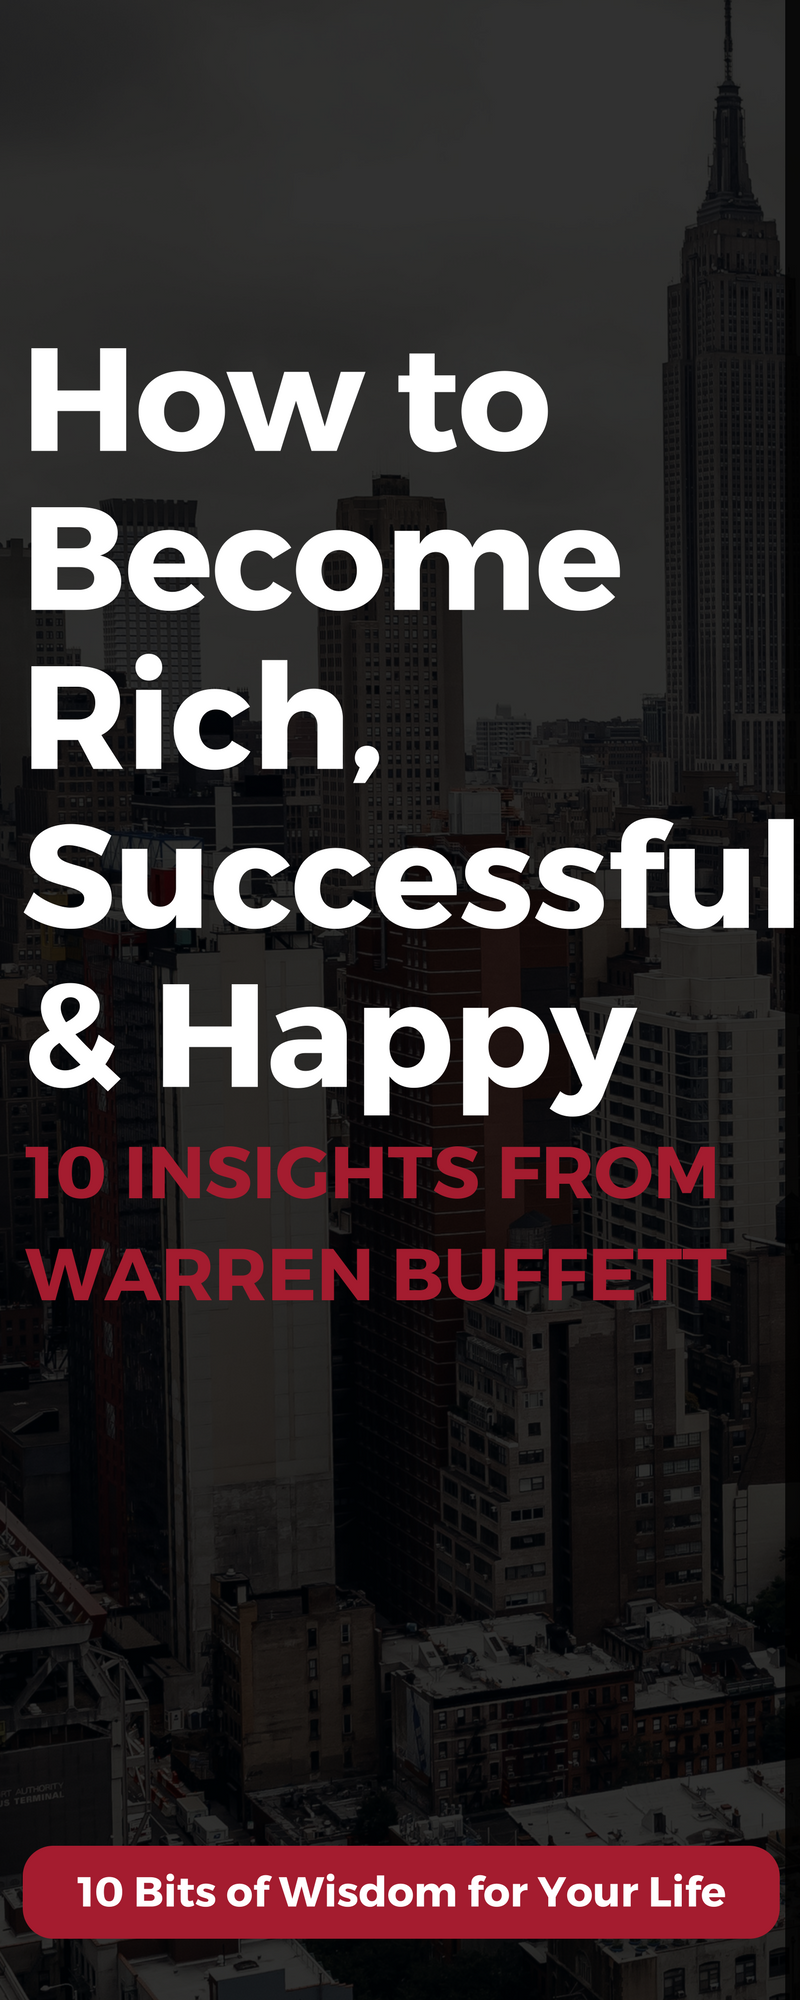 What does Warren Buffett have to save about what it takes to become rich, successful, and happy? Here's 10 LIFE CHANGING lessons about money, investing and life from Warren Buffett.